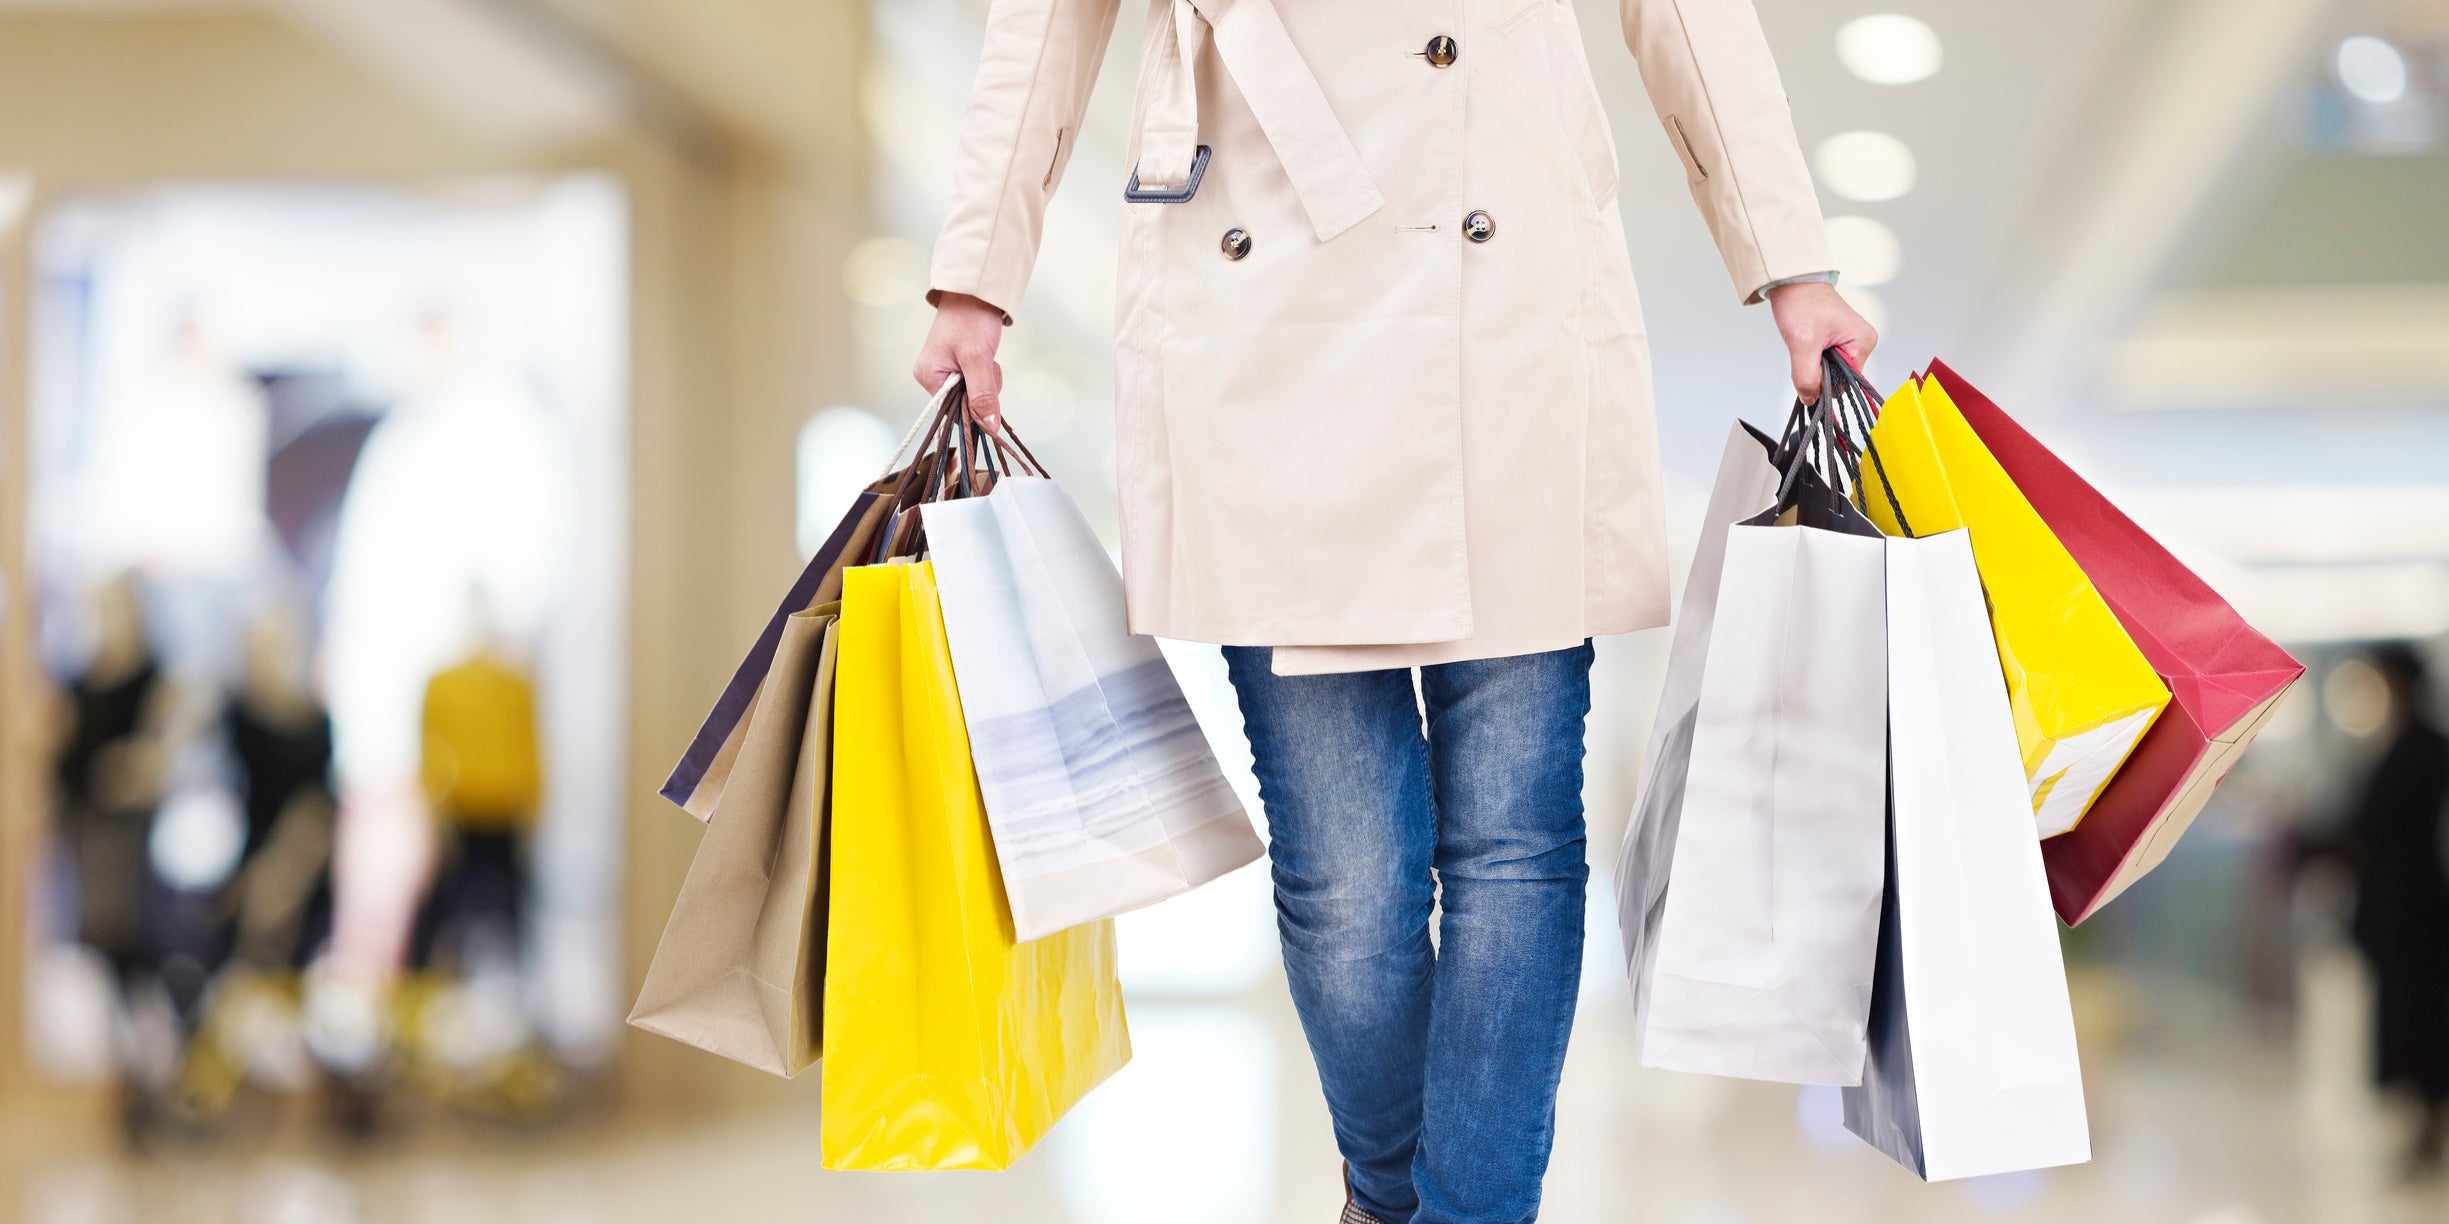 Store Credit Cards Are They Worth It The Motley Fool